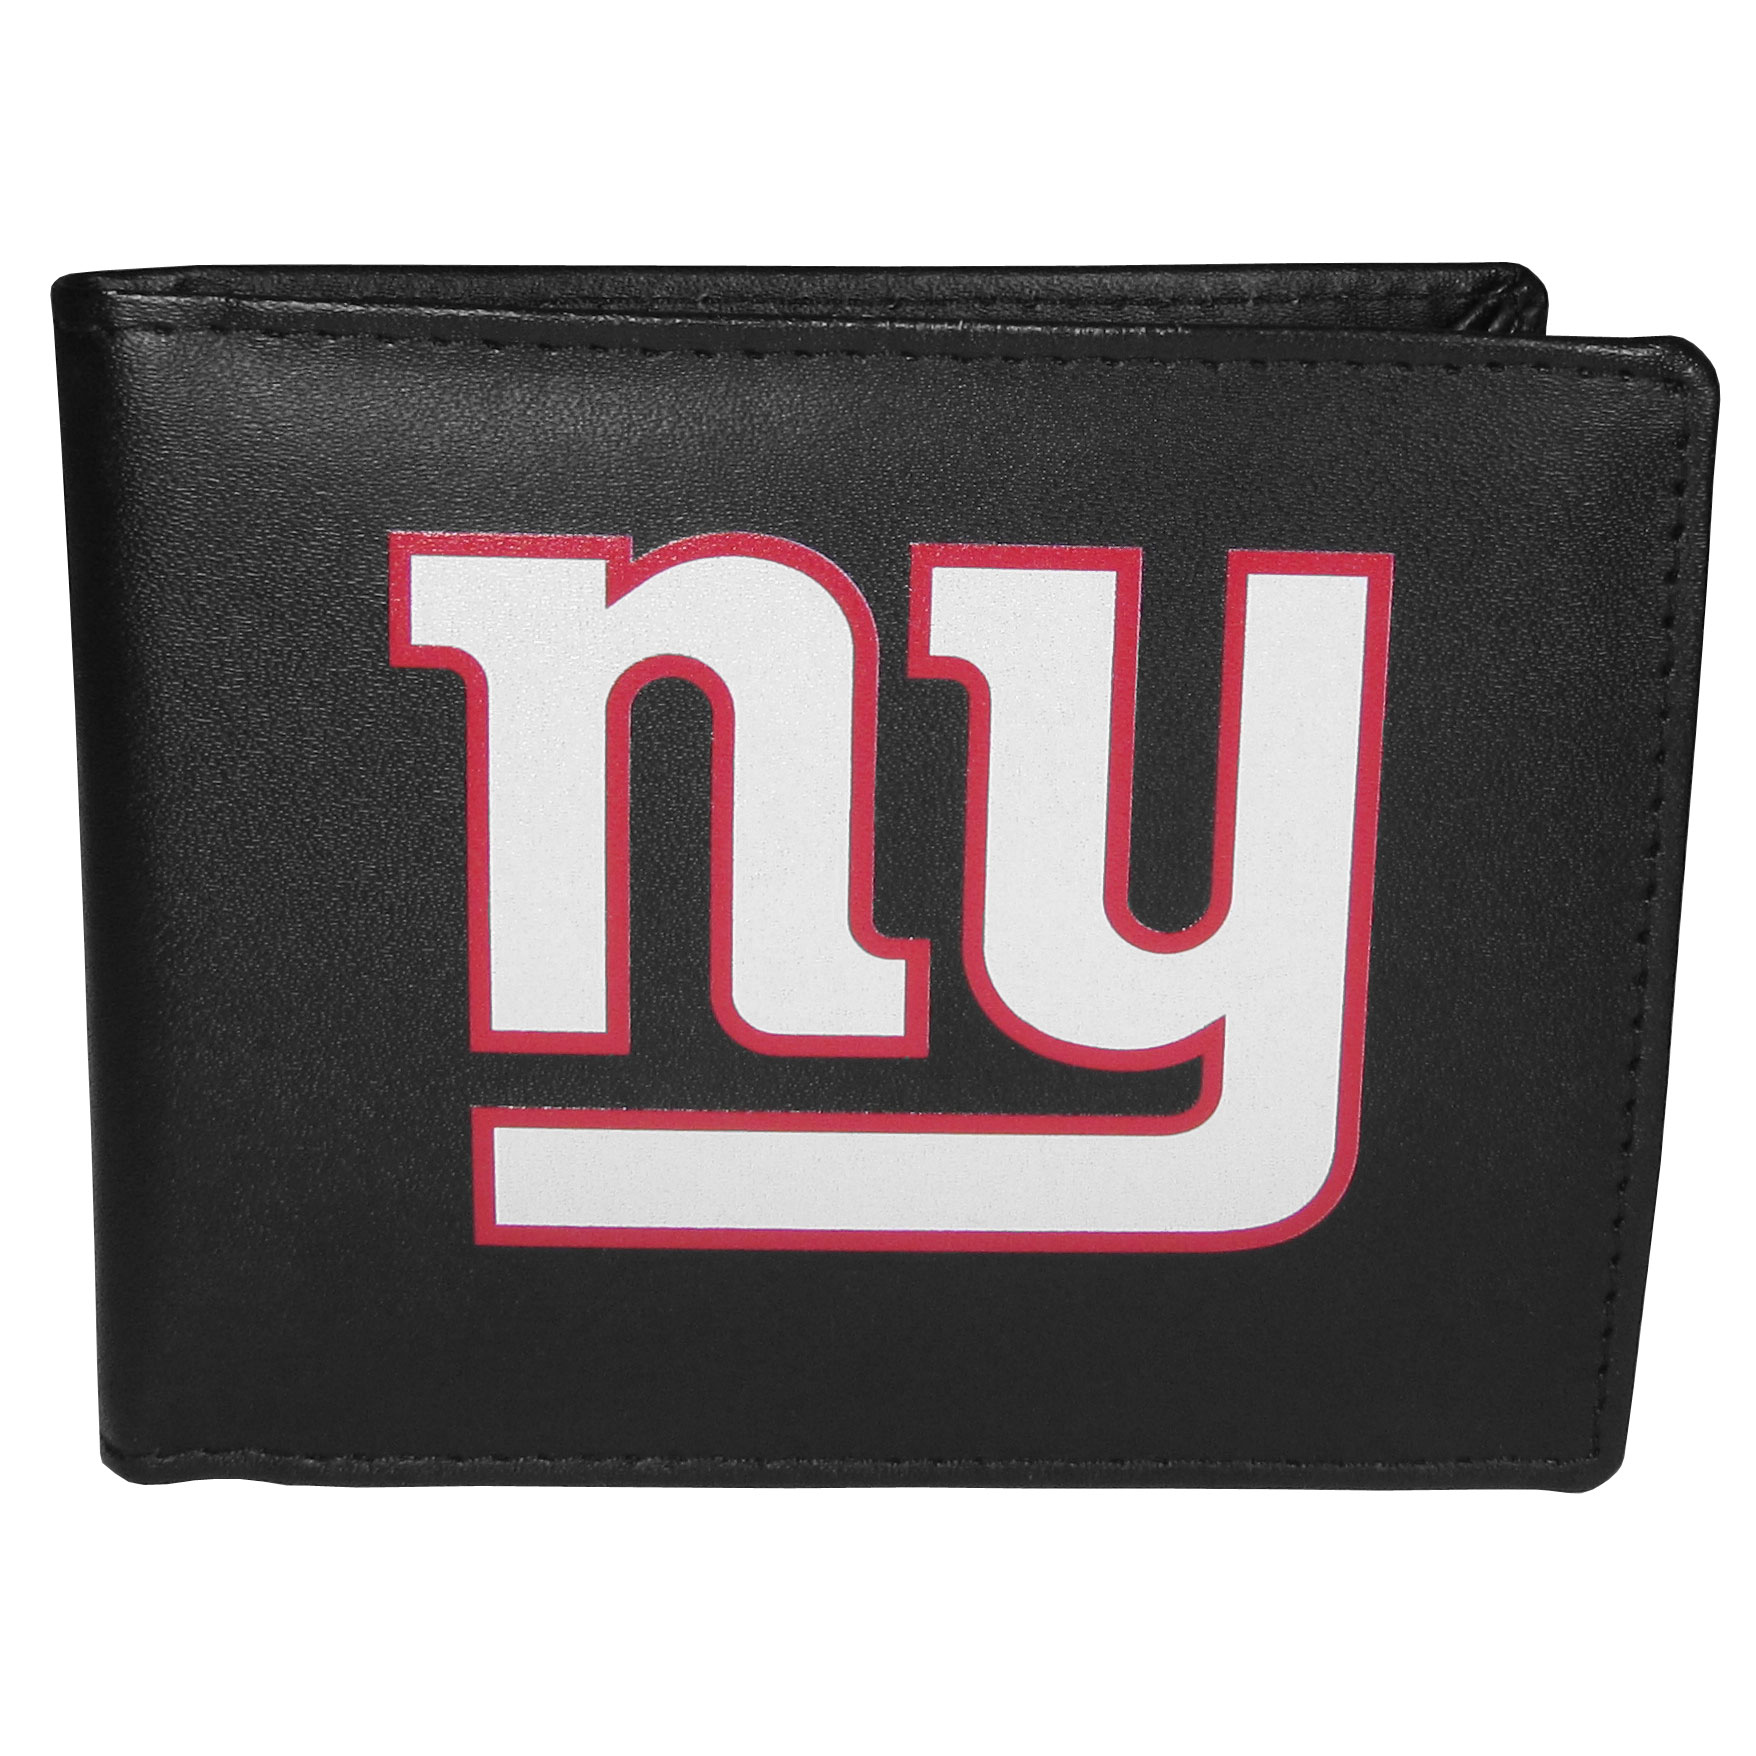 New York Giants Leather Bi-fold Wallet, Large Logo - Our classic fine leather bi-fold wallet is meticulously crafted with genuine leather that will age beautifully so you will have a quality wallet for years to come. The wallet opens to a large, billfold pocket and numerous credit card slots and has a convenient windowed ID slot. The front of the wallet features an extra large New York Giants printed logo.